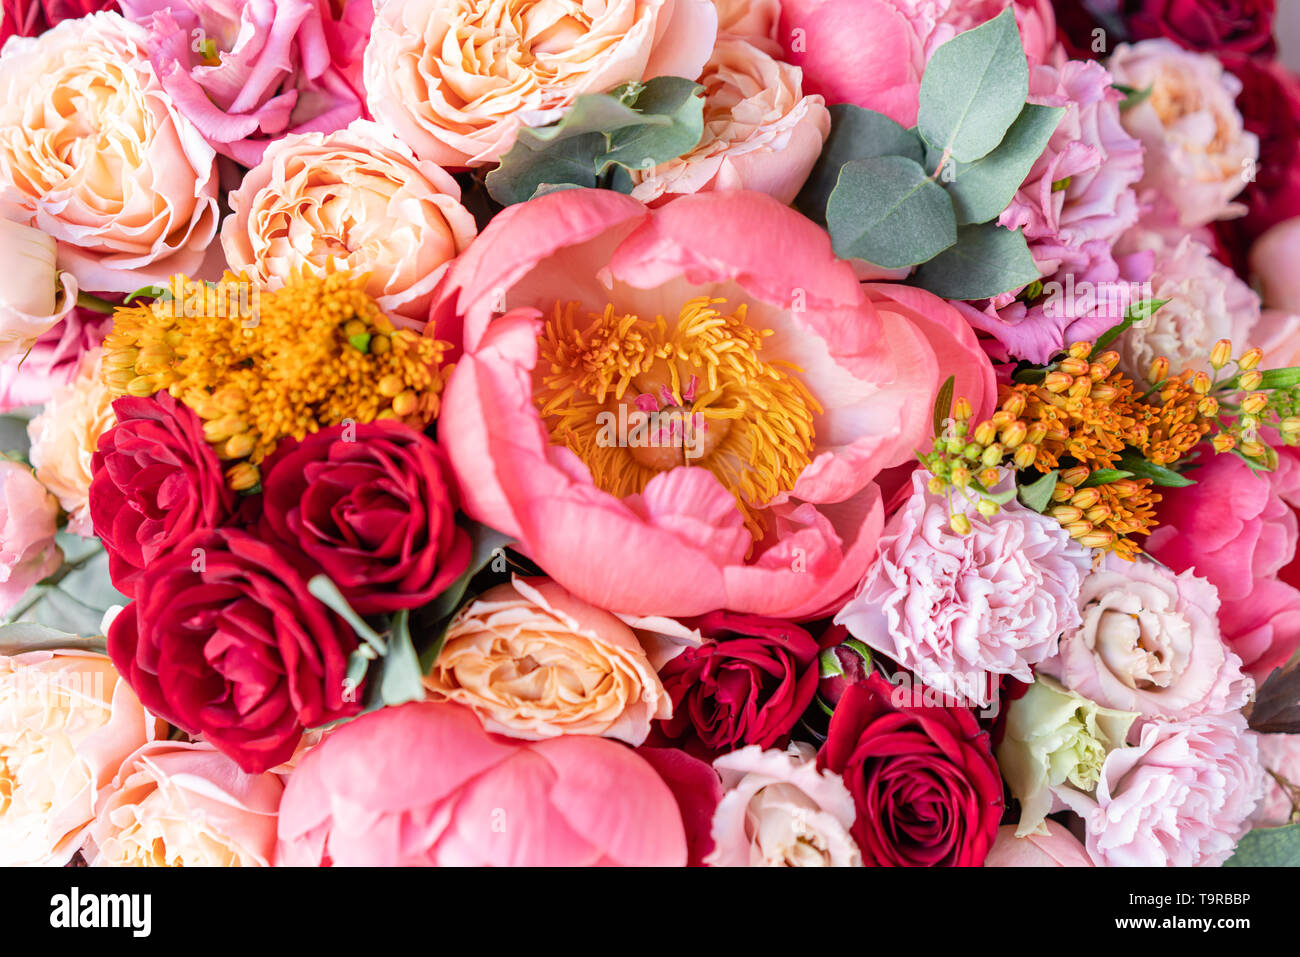 Close Up Large Beautiful Bouquet Of Mixed Flowers Flower Background And Wallpaper Floral Shop Concept Beautiful Fresh Cut Bouquet Flowers Stock Photo Alamy